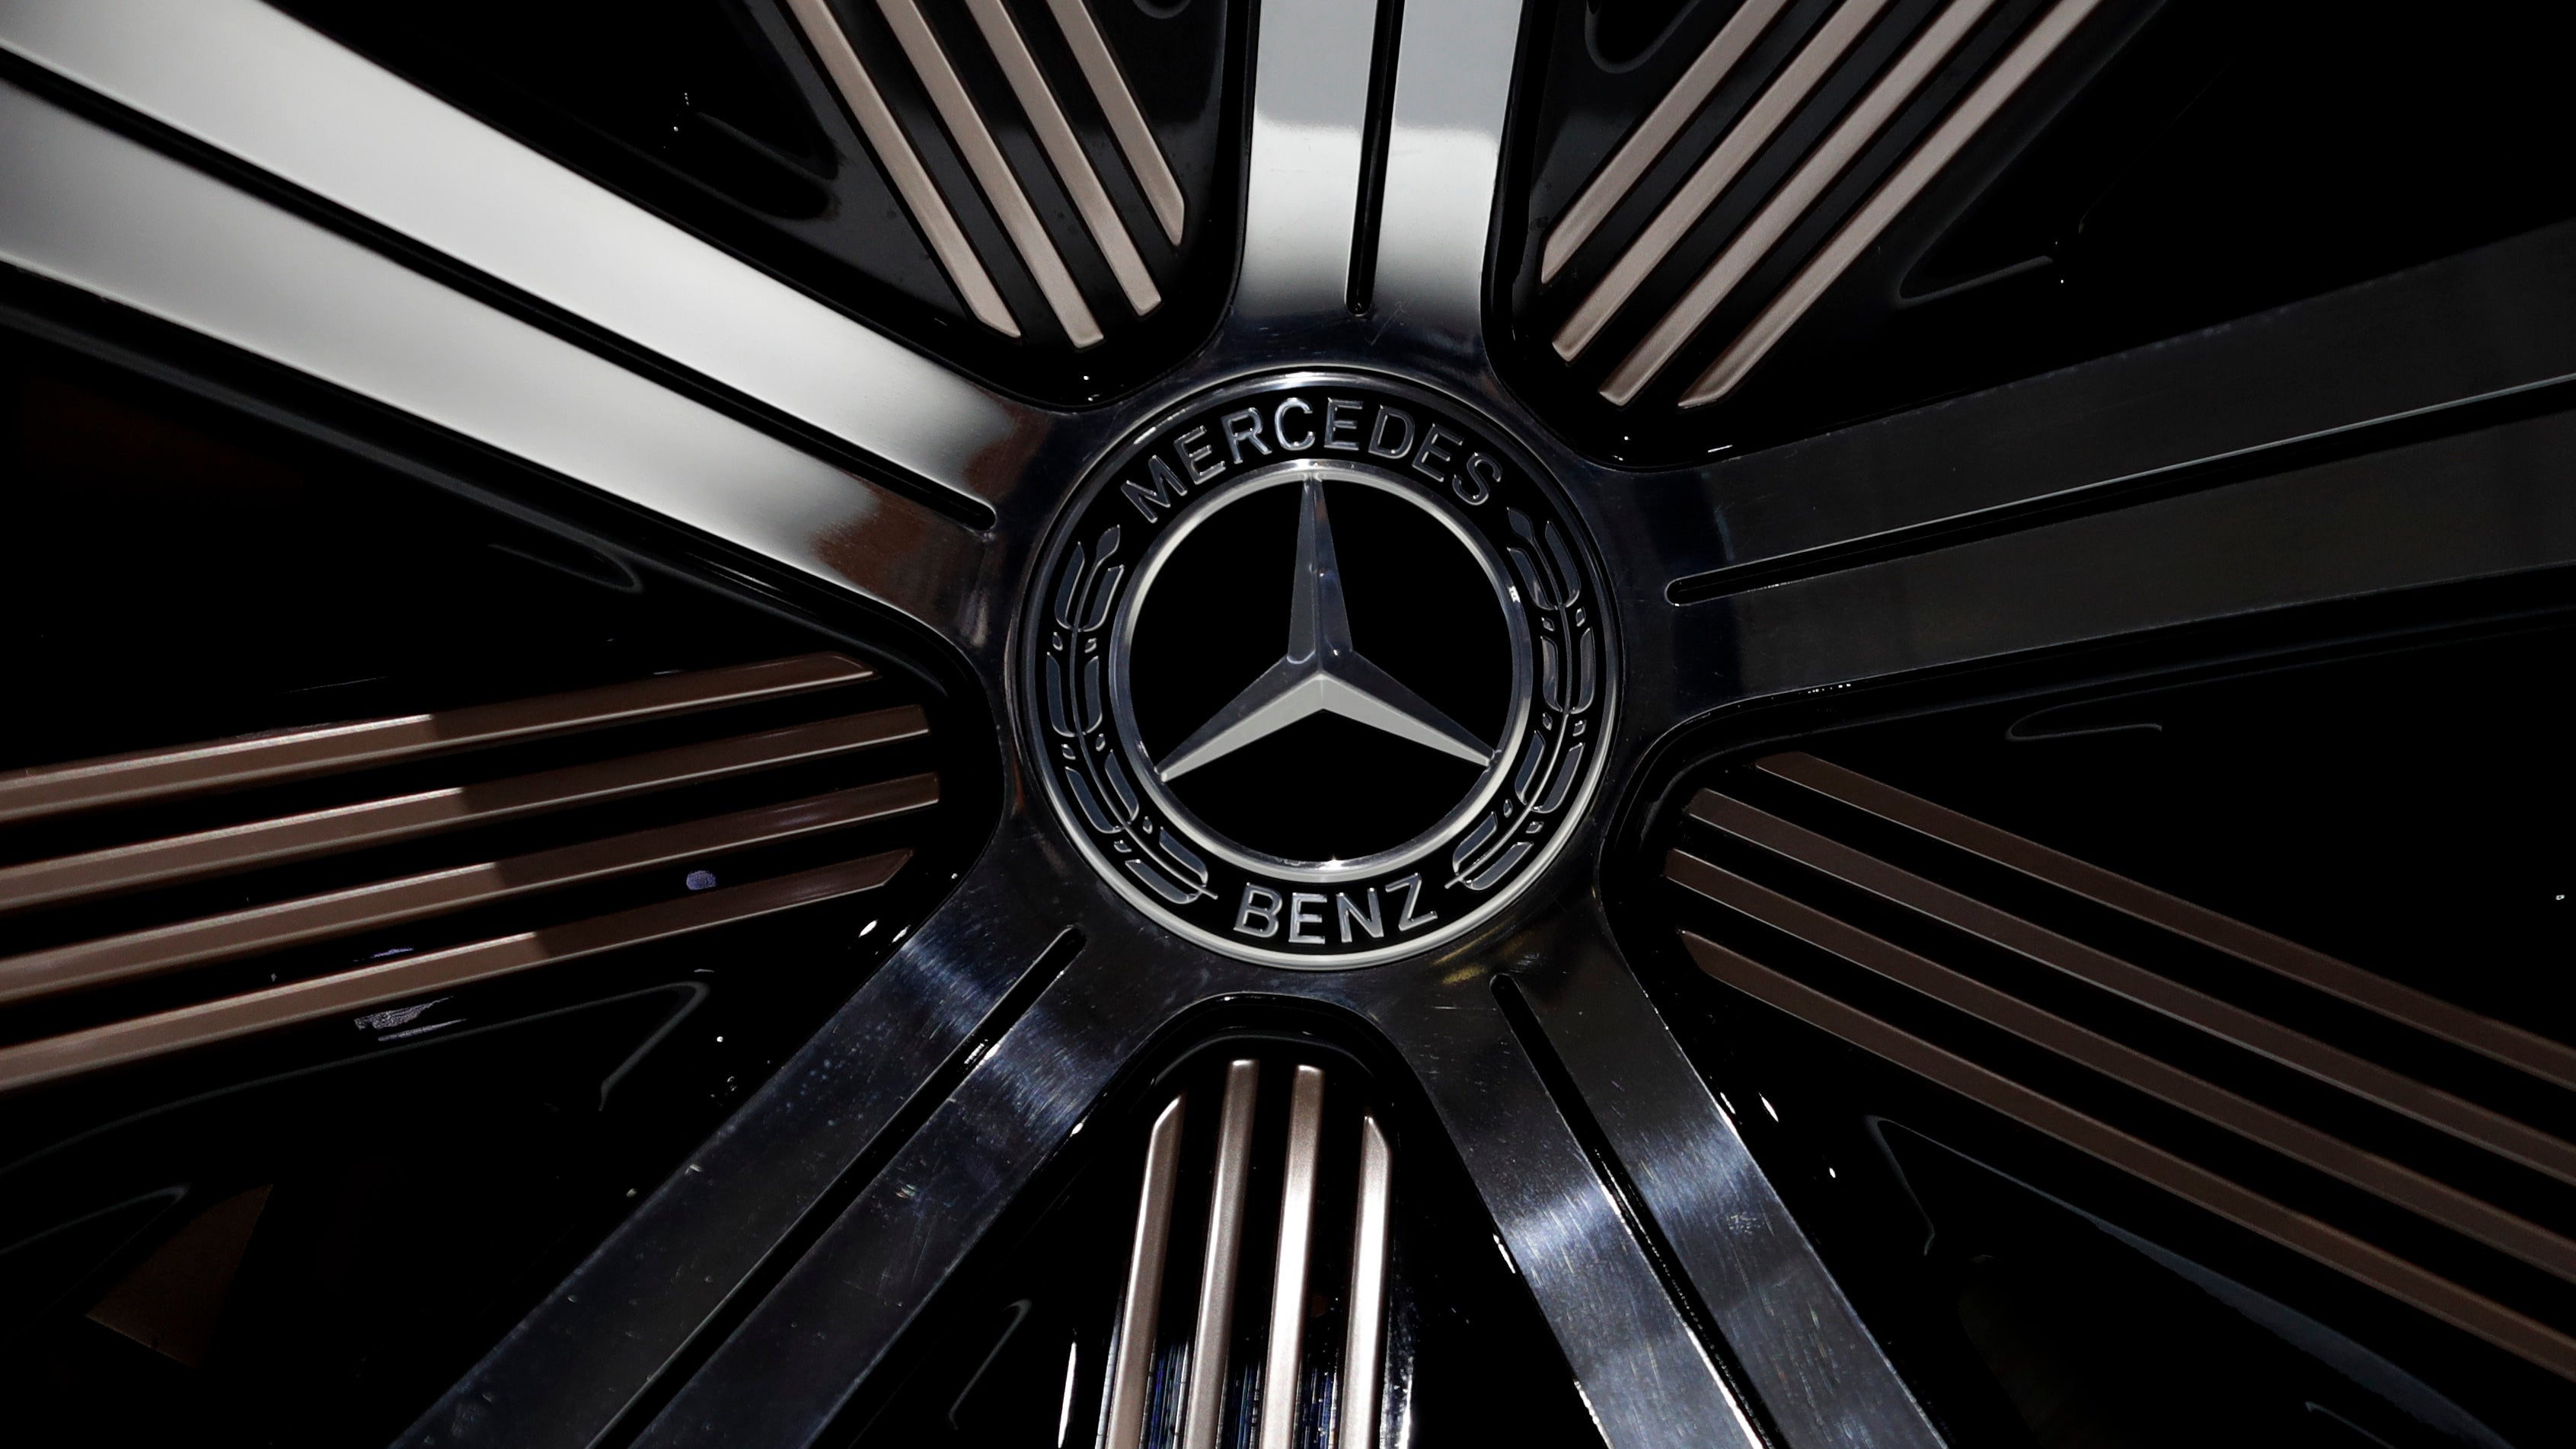 Mercedes-Benz Owner Daimler AG May Have Rigged Emissions